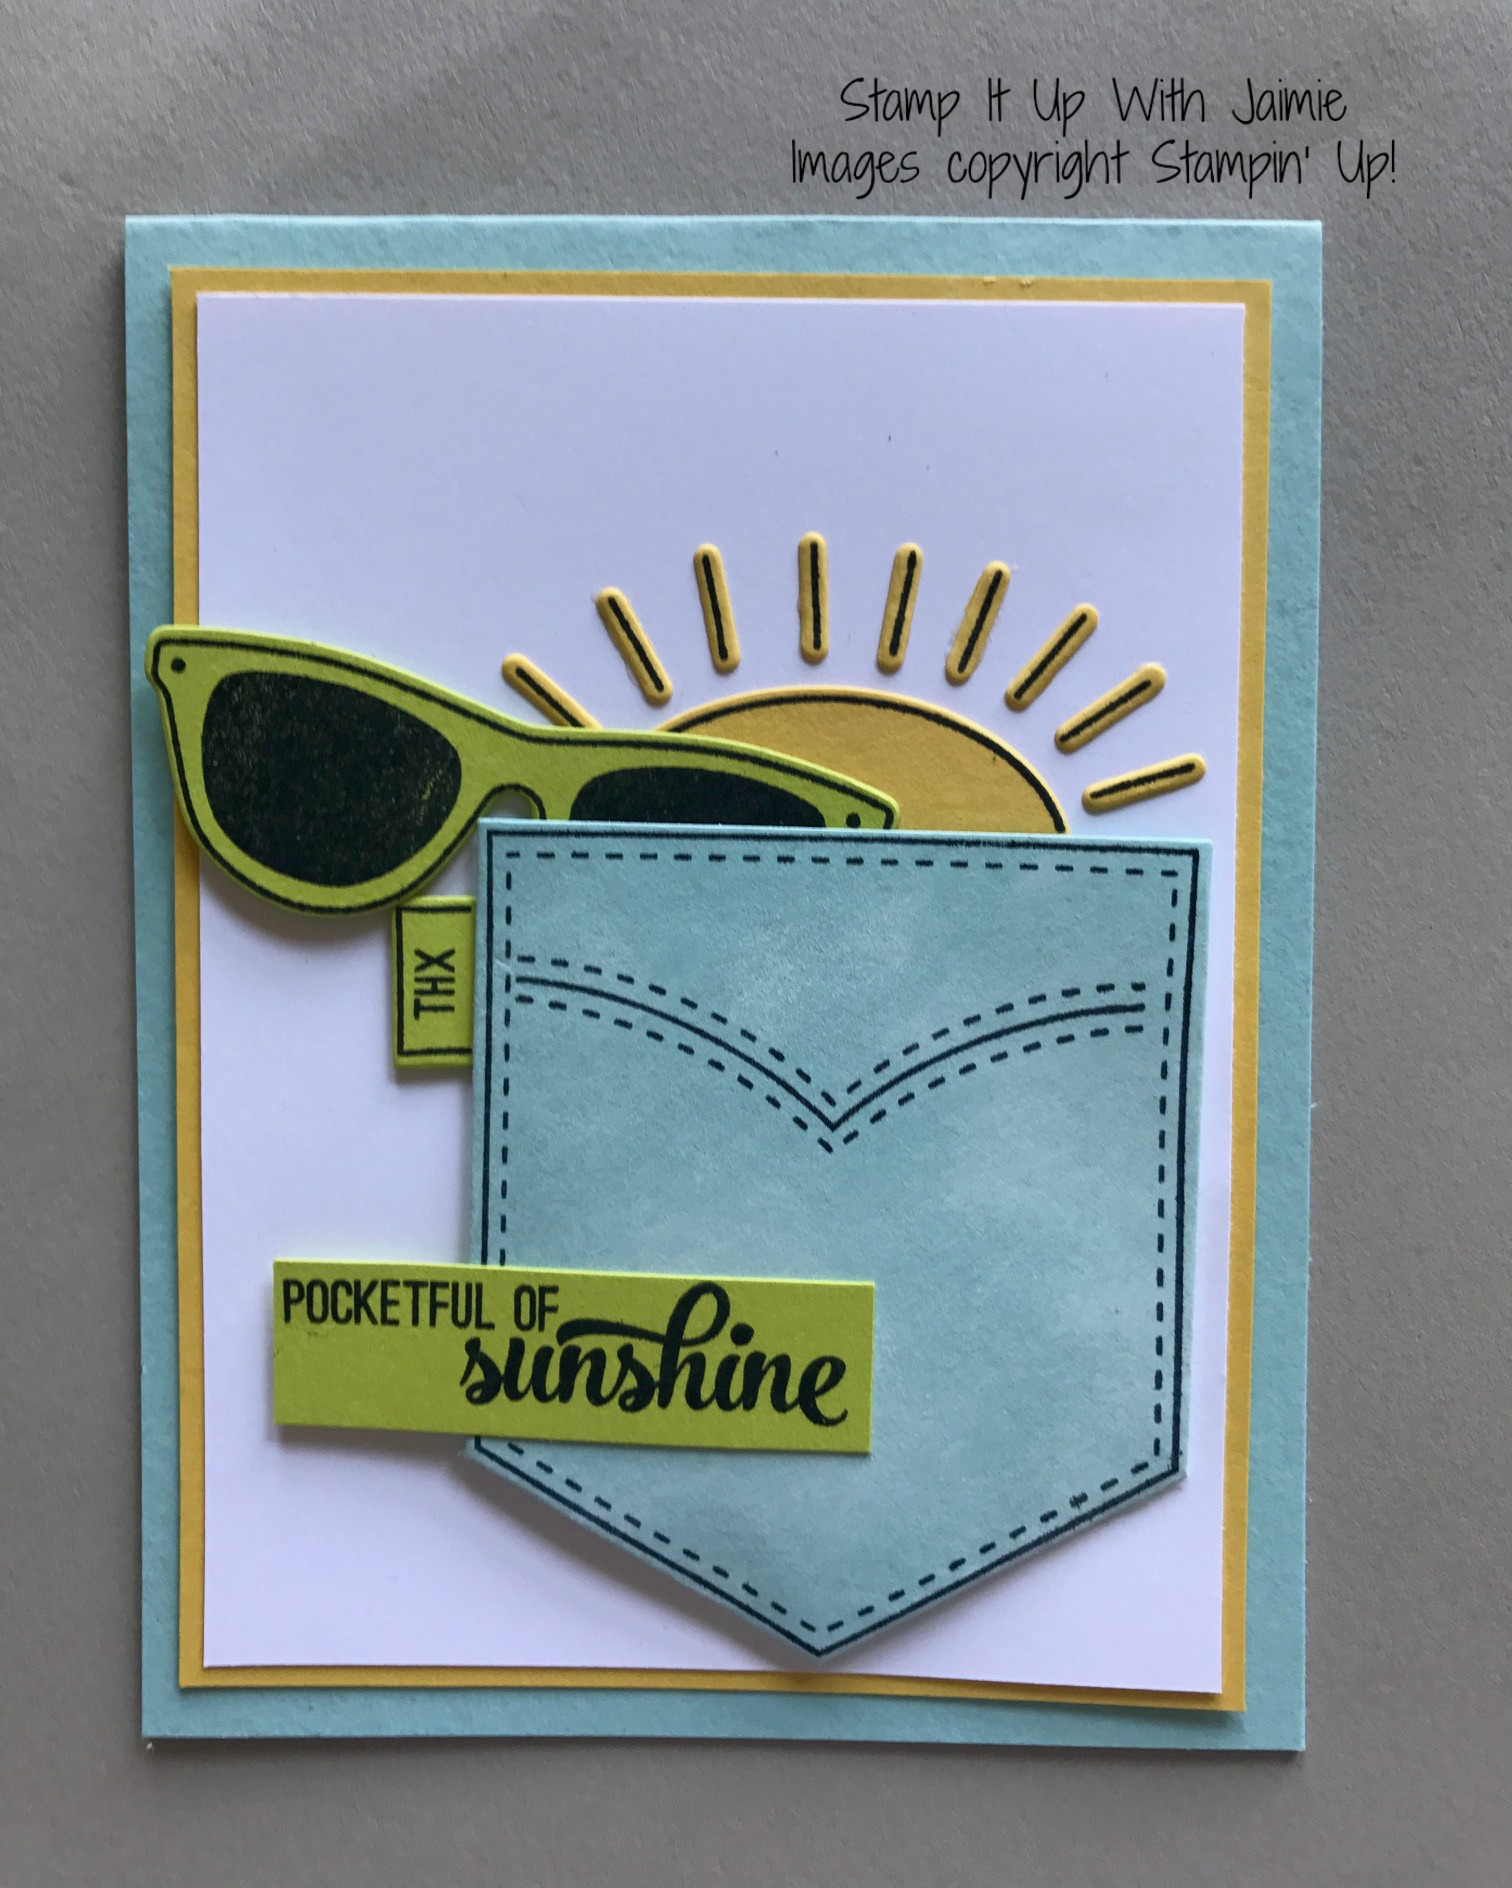 Stampin Up Pocketful Of Sunshine Stamp It Up With Jaimie